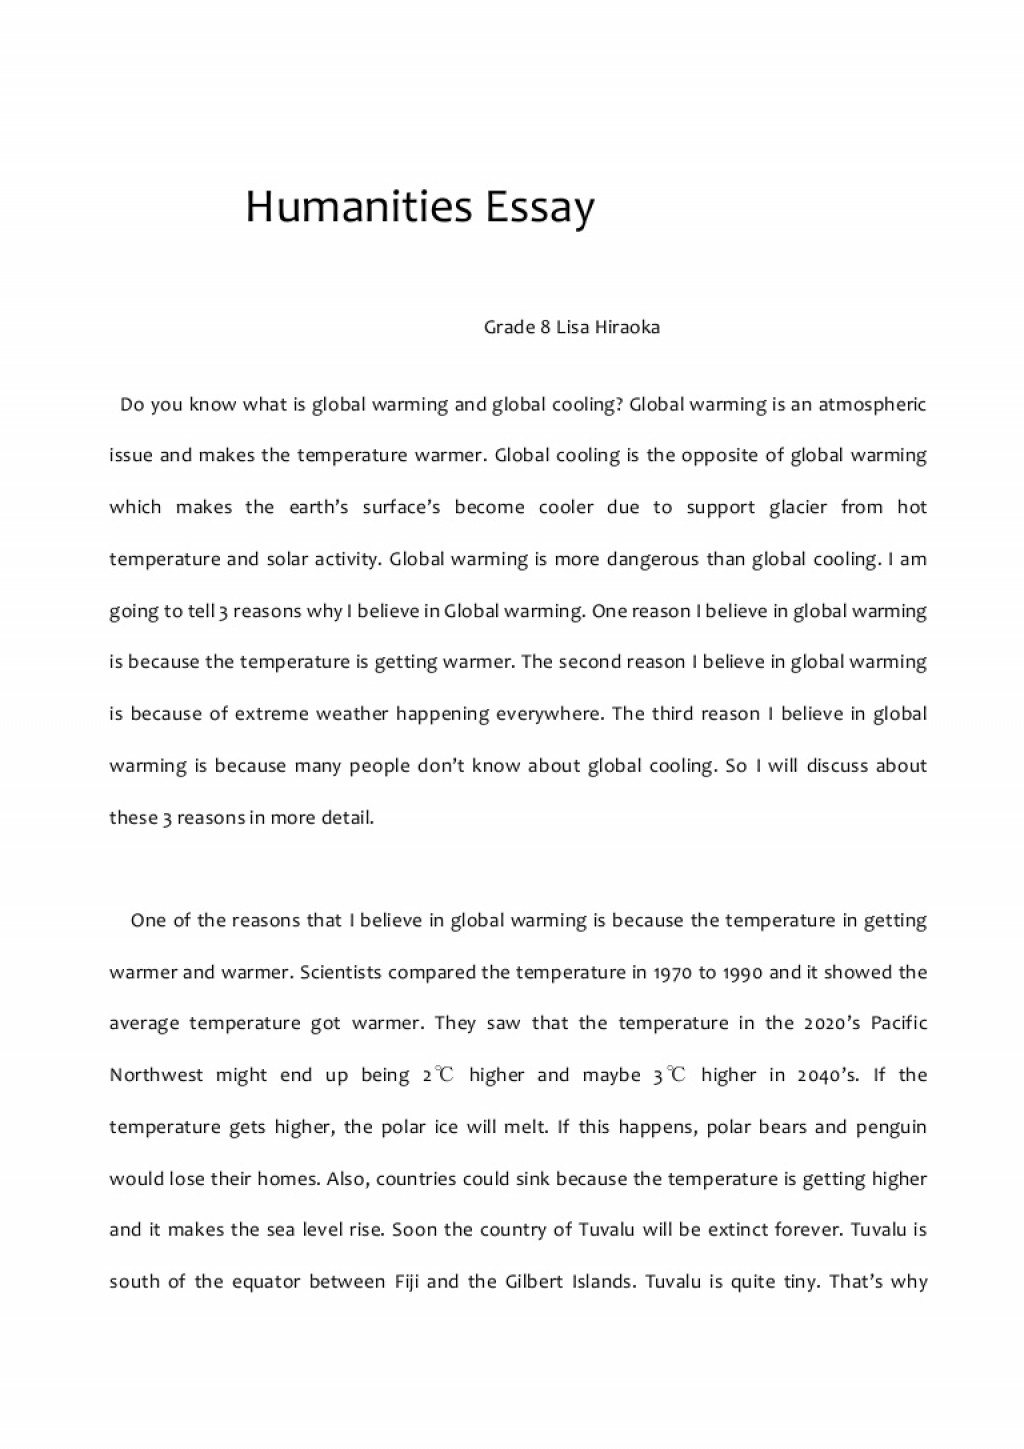 005 I Believe Essay Topics Best Narrative This Samples Humanitiesessay Phpapp02 Thumbn Good Template Example Stupendous Examples Npr College Large